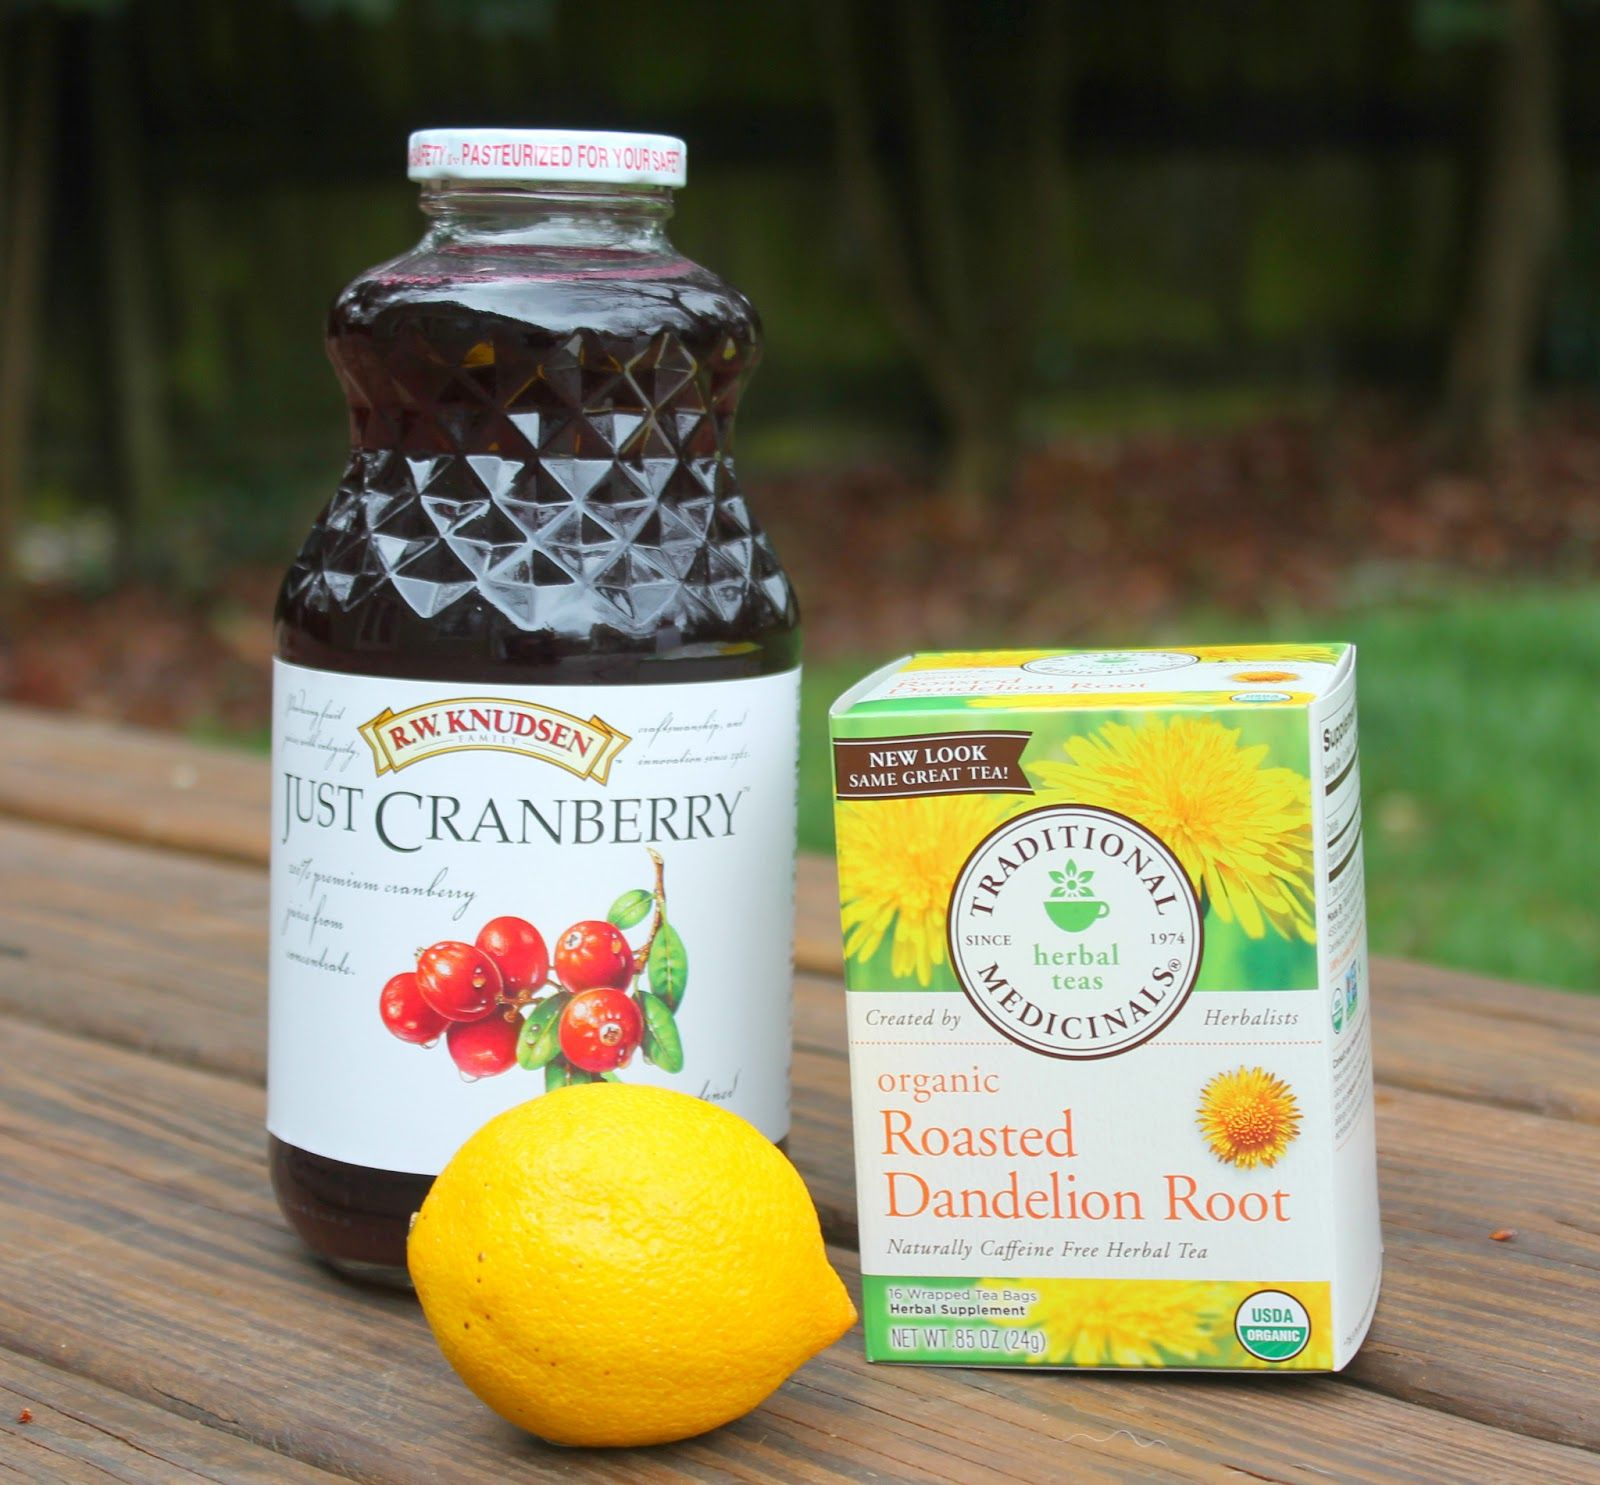 Dandelion Root Tea And Cranberry Juice A Perfect Subsute For Coffee May Support Kidney Health By Promoting Regular Cleansing